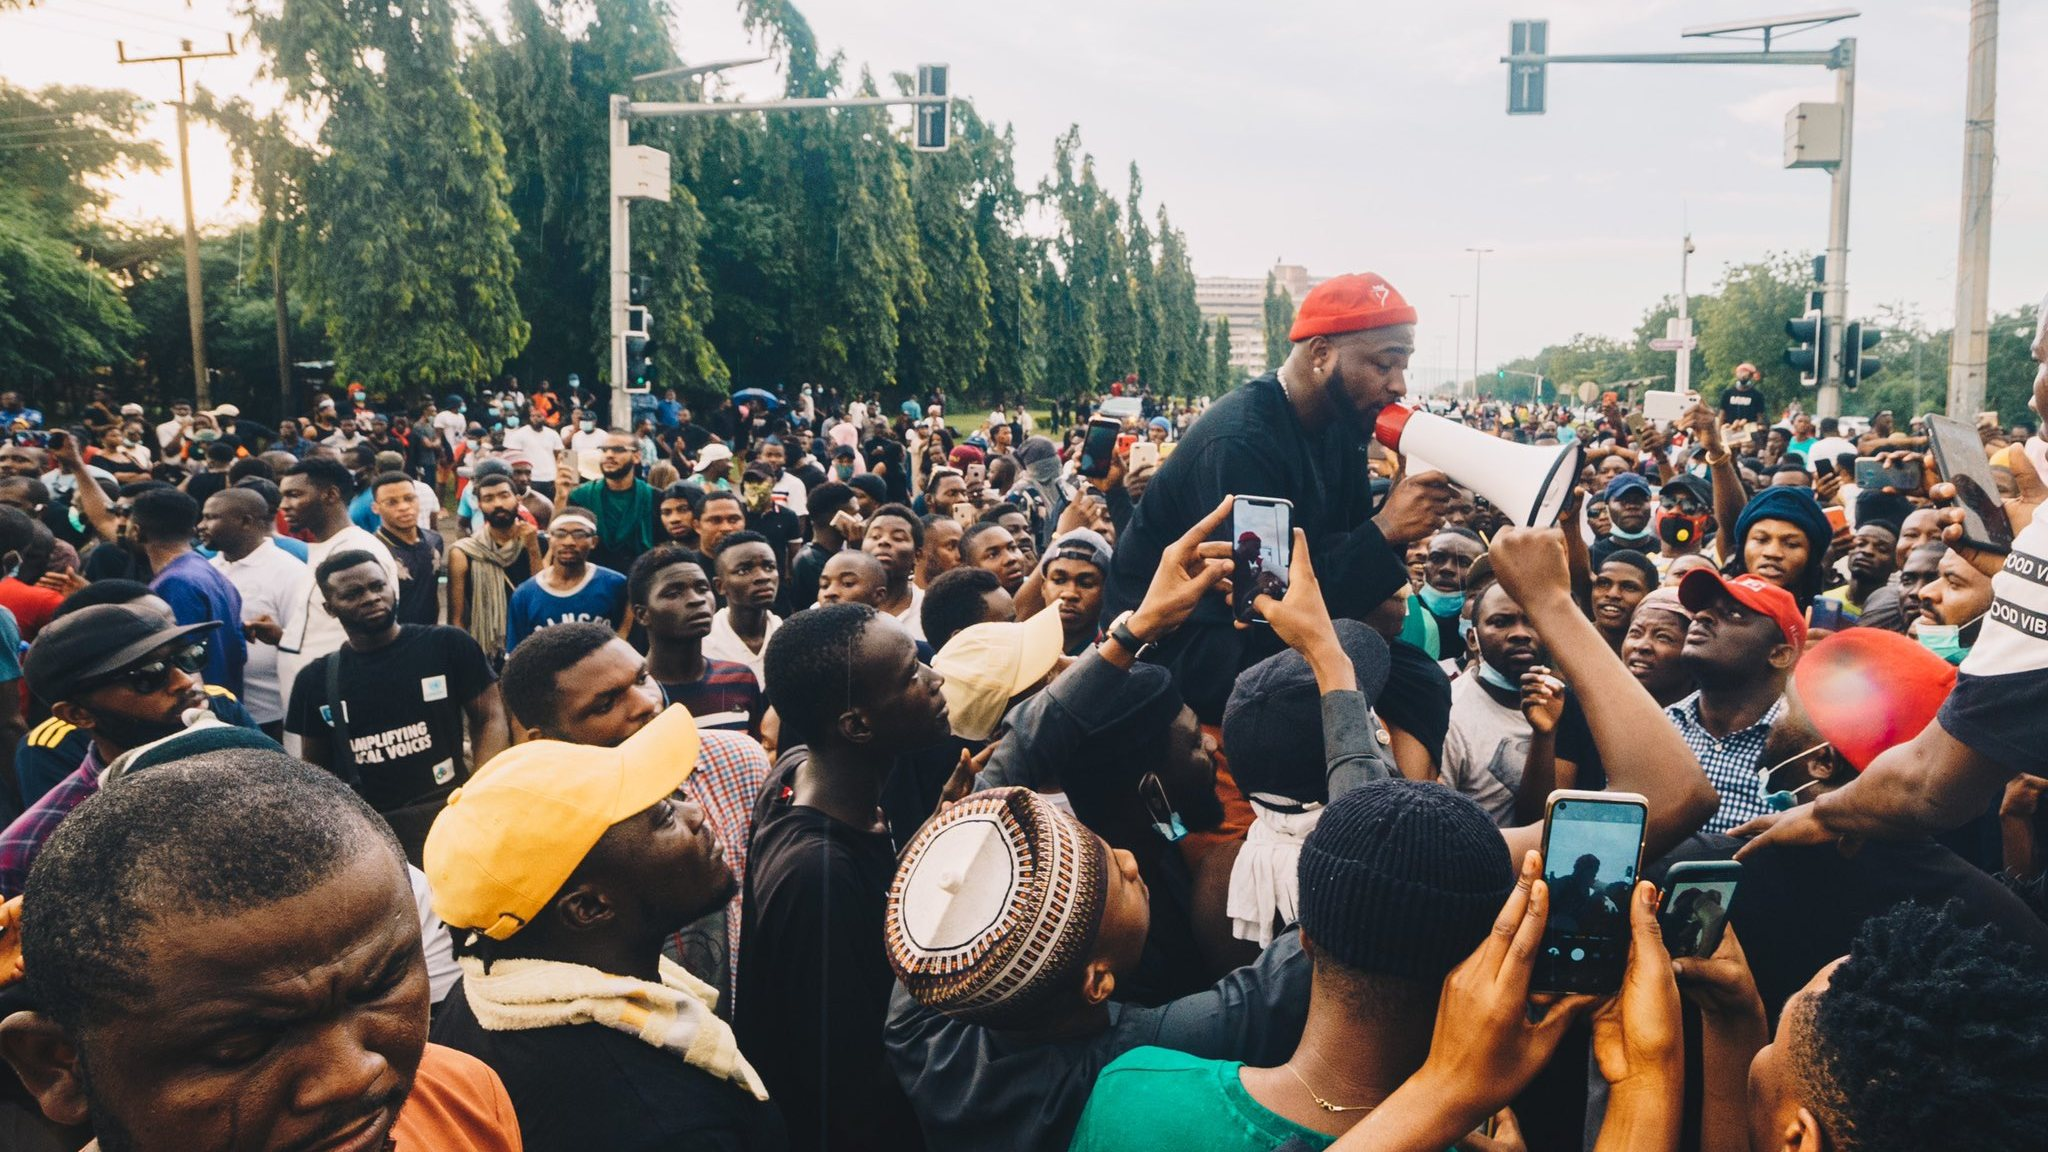 David Adeleke also known as Davido, joins the #EndSARS protest in Abuja. [PHOTO CREDIT: Official Twitter handle of Davido]